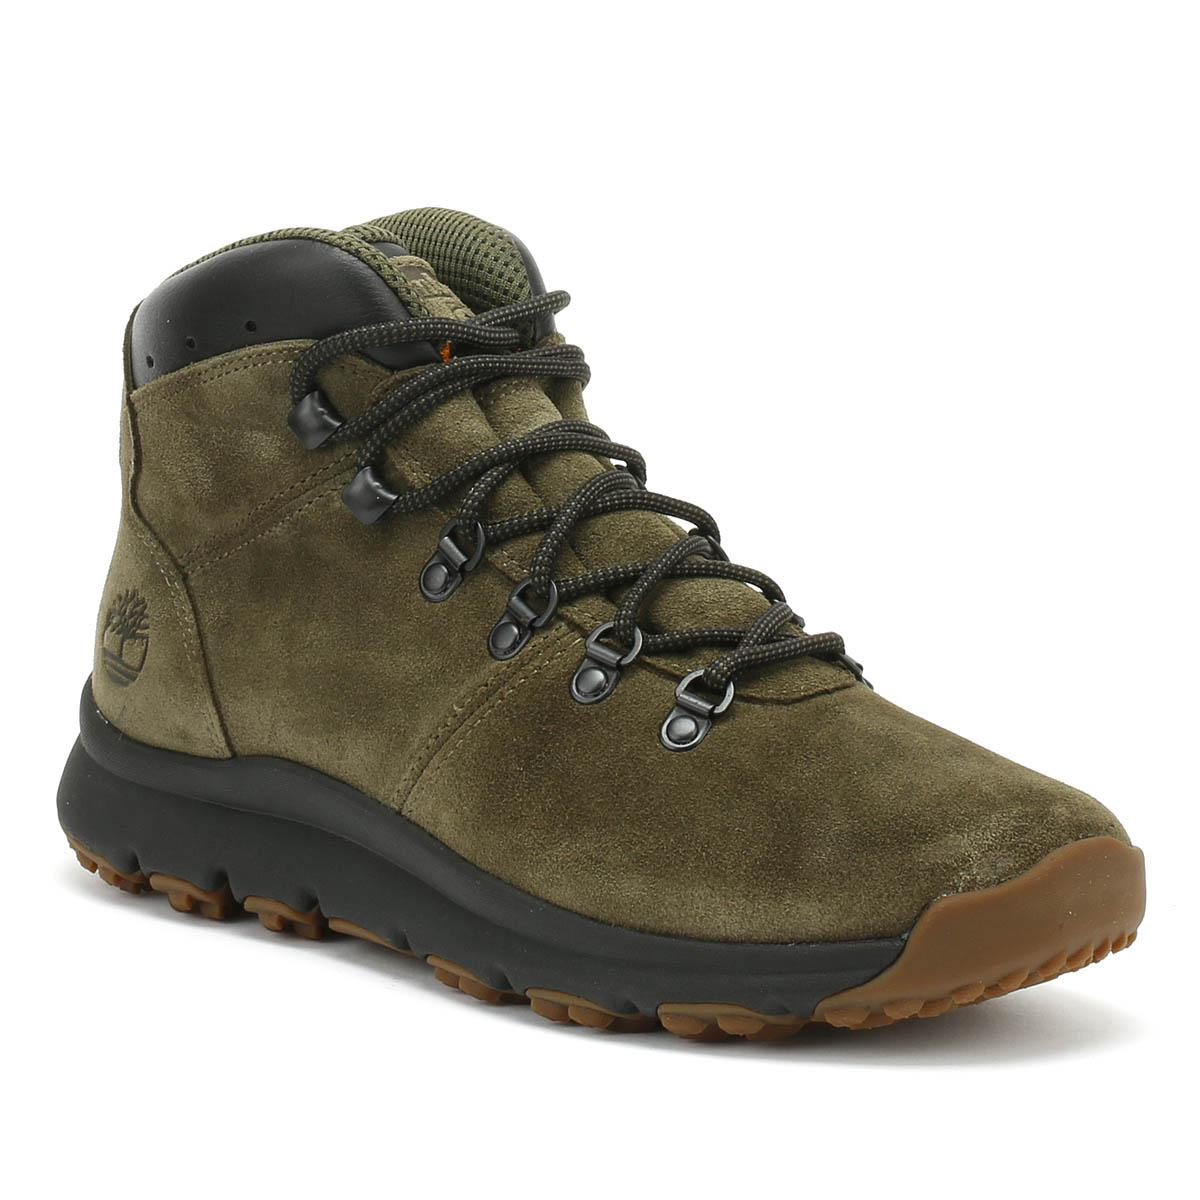 a6cfc52604fd Timberland World Hiker Mid Ankle Boot in Green for Men - Lyst